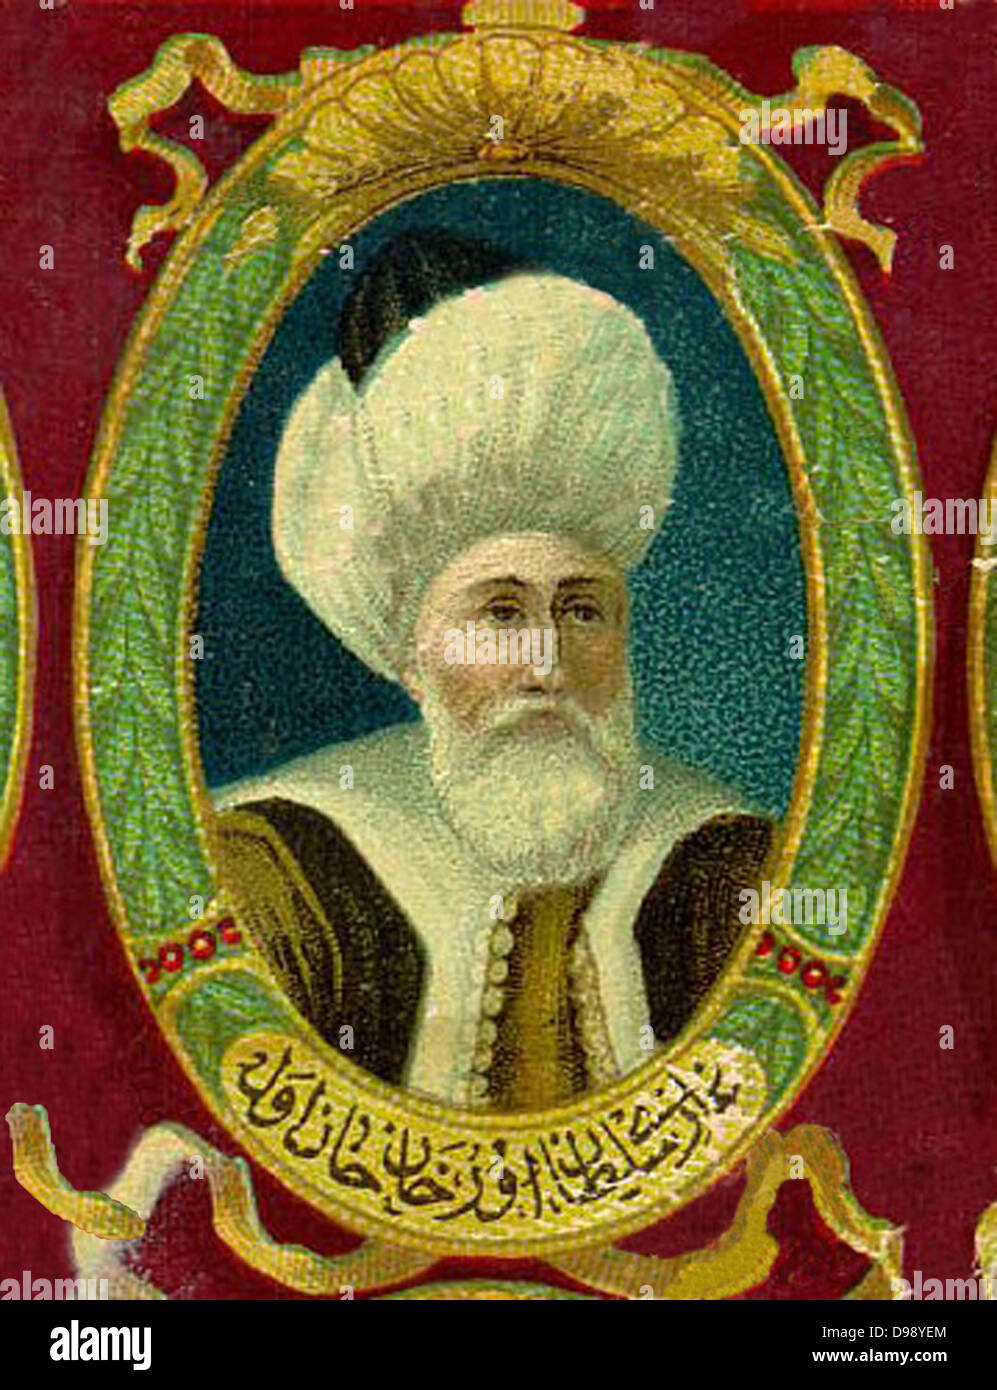 Murad I  1326 – 1389, Sultan of the Ottoman Empire, from 1361 to 1389. He was the son of Orhan I and the Valide - Stock Image